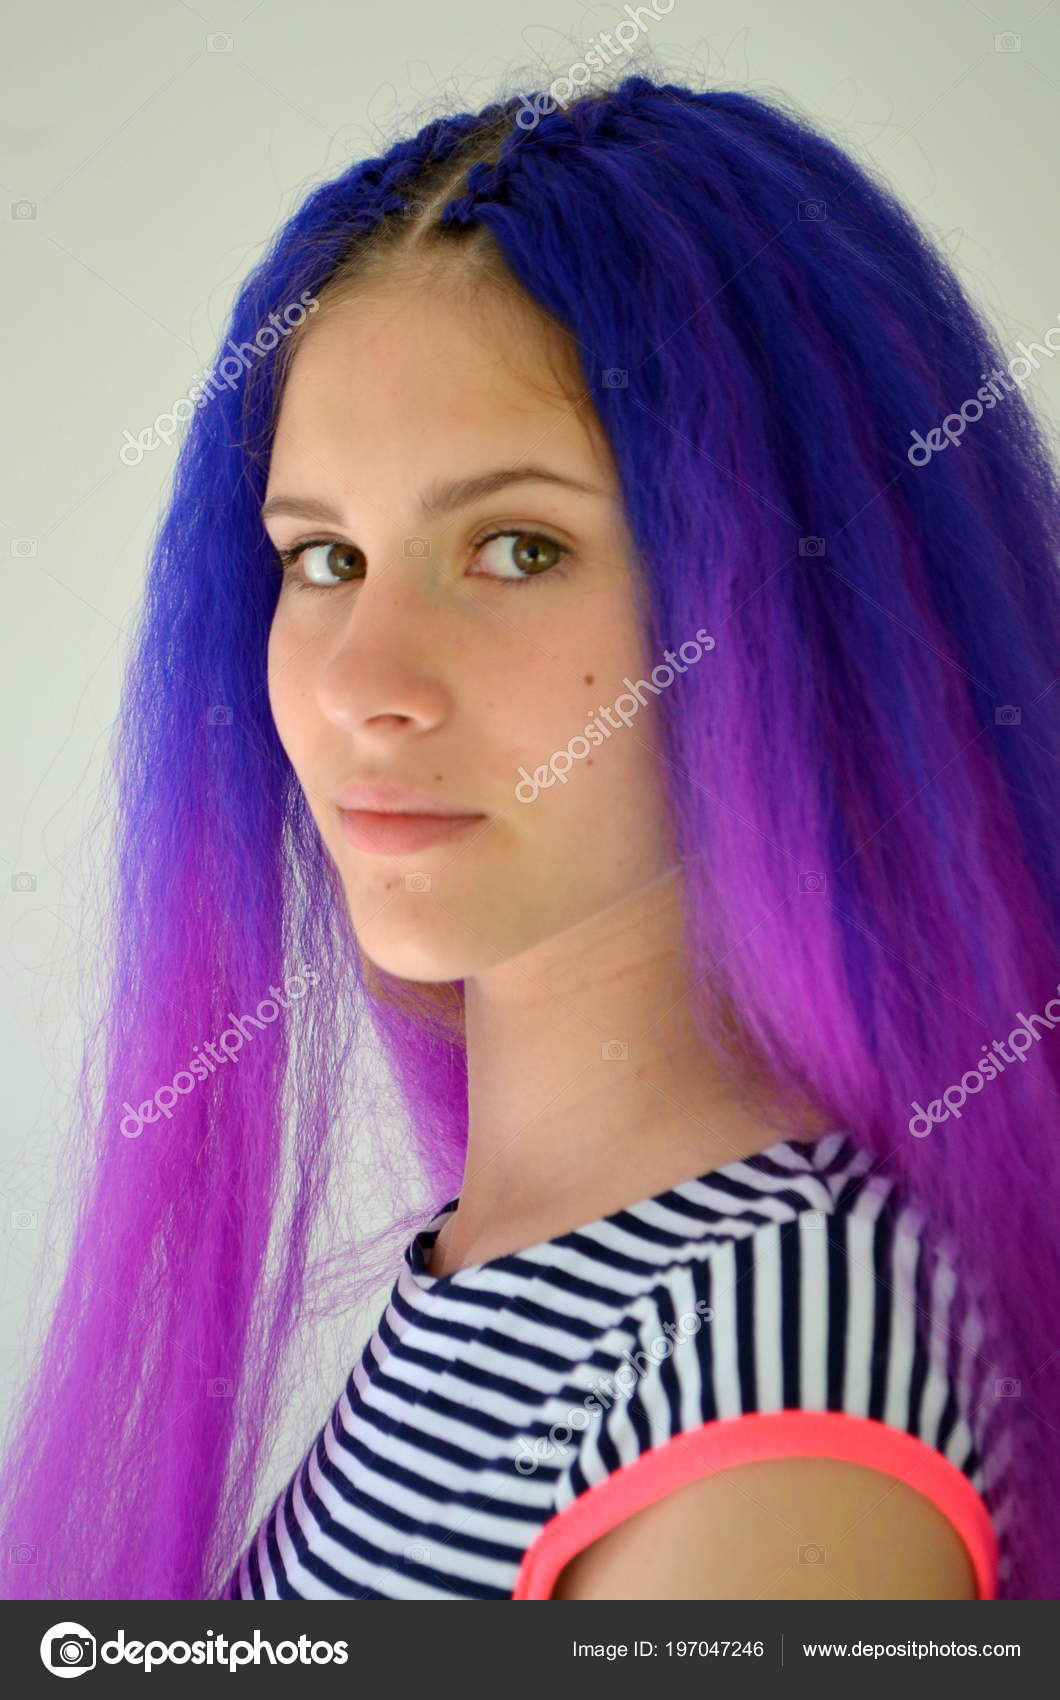 Bright Stylish Image Girl Blue Purple Hair Technique Hair Extensions